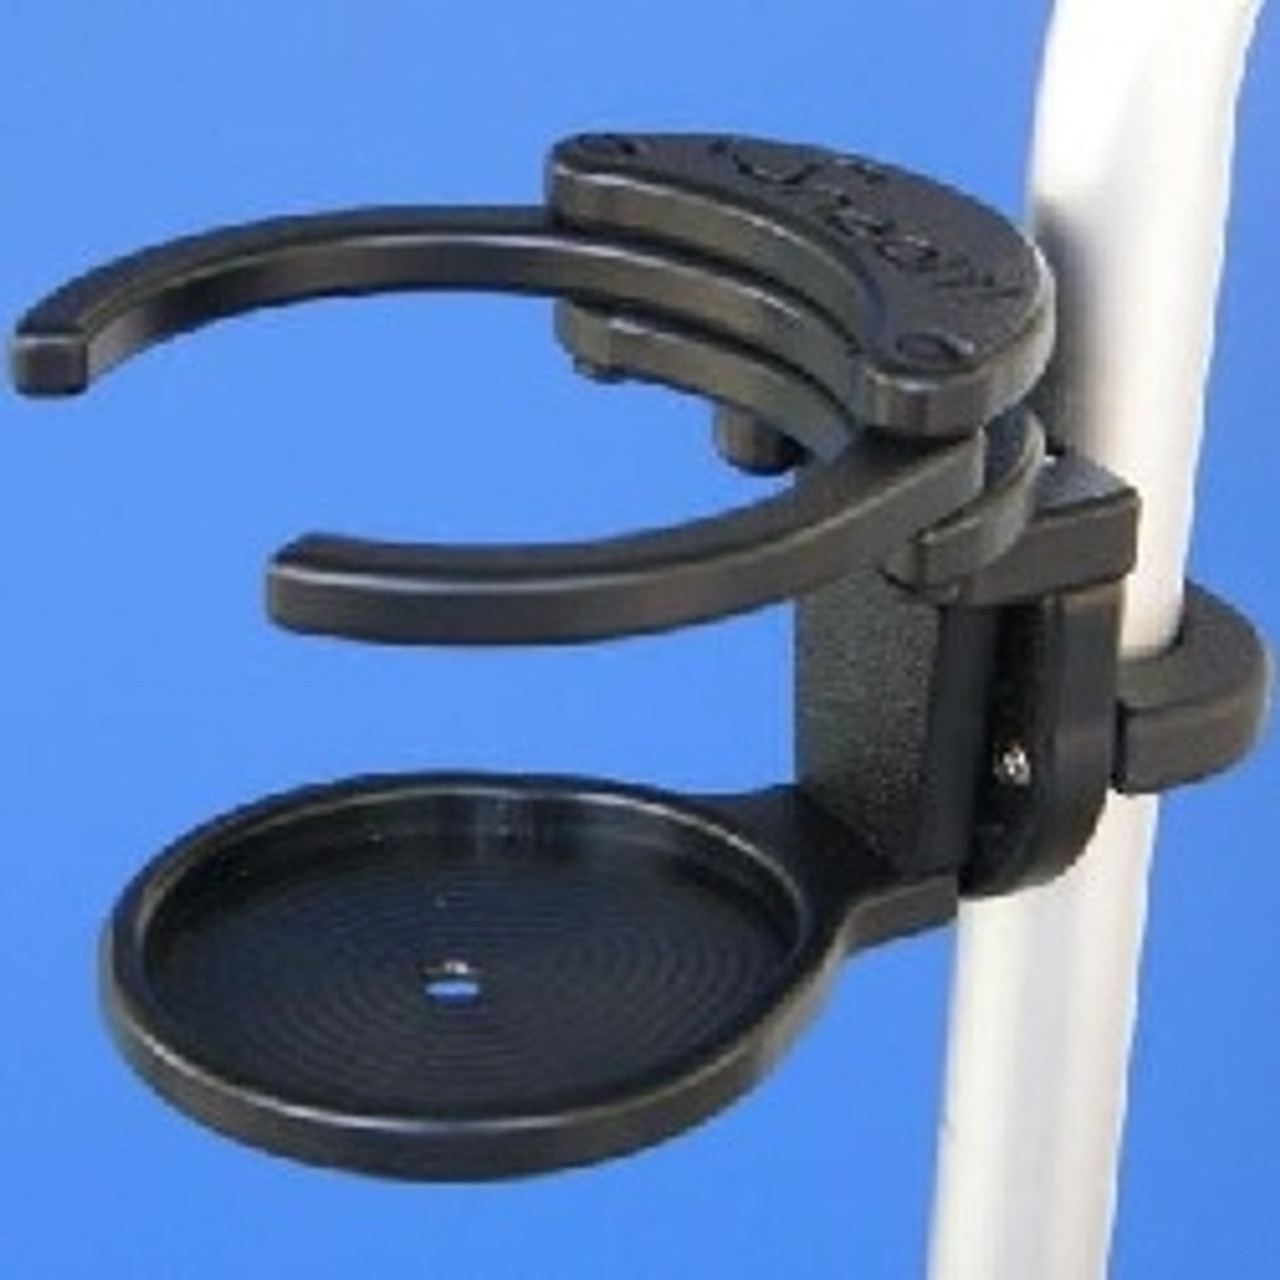 SnapIt! Wheelchair Adjustable Drink Holder